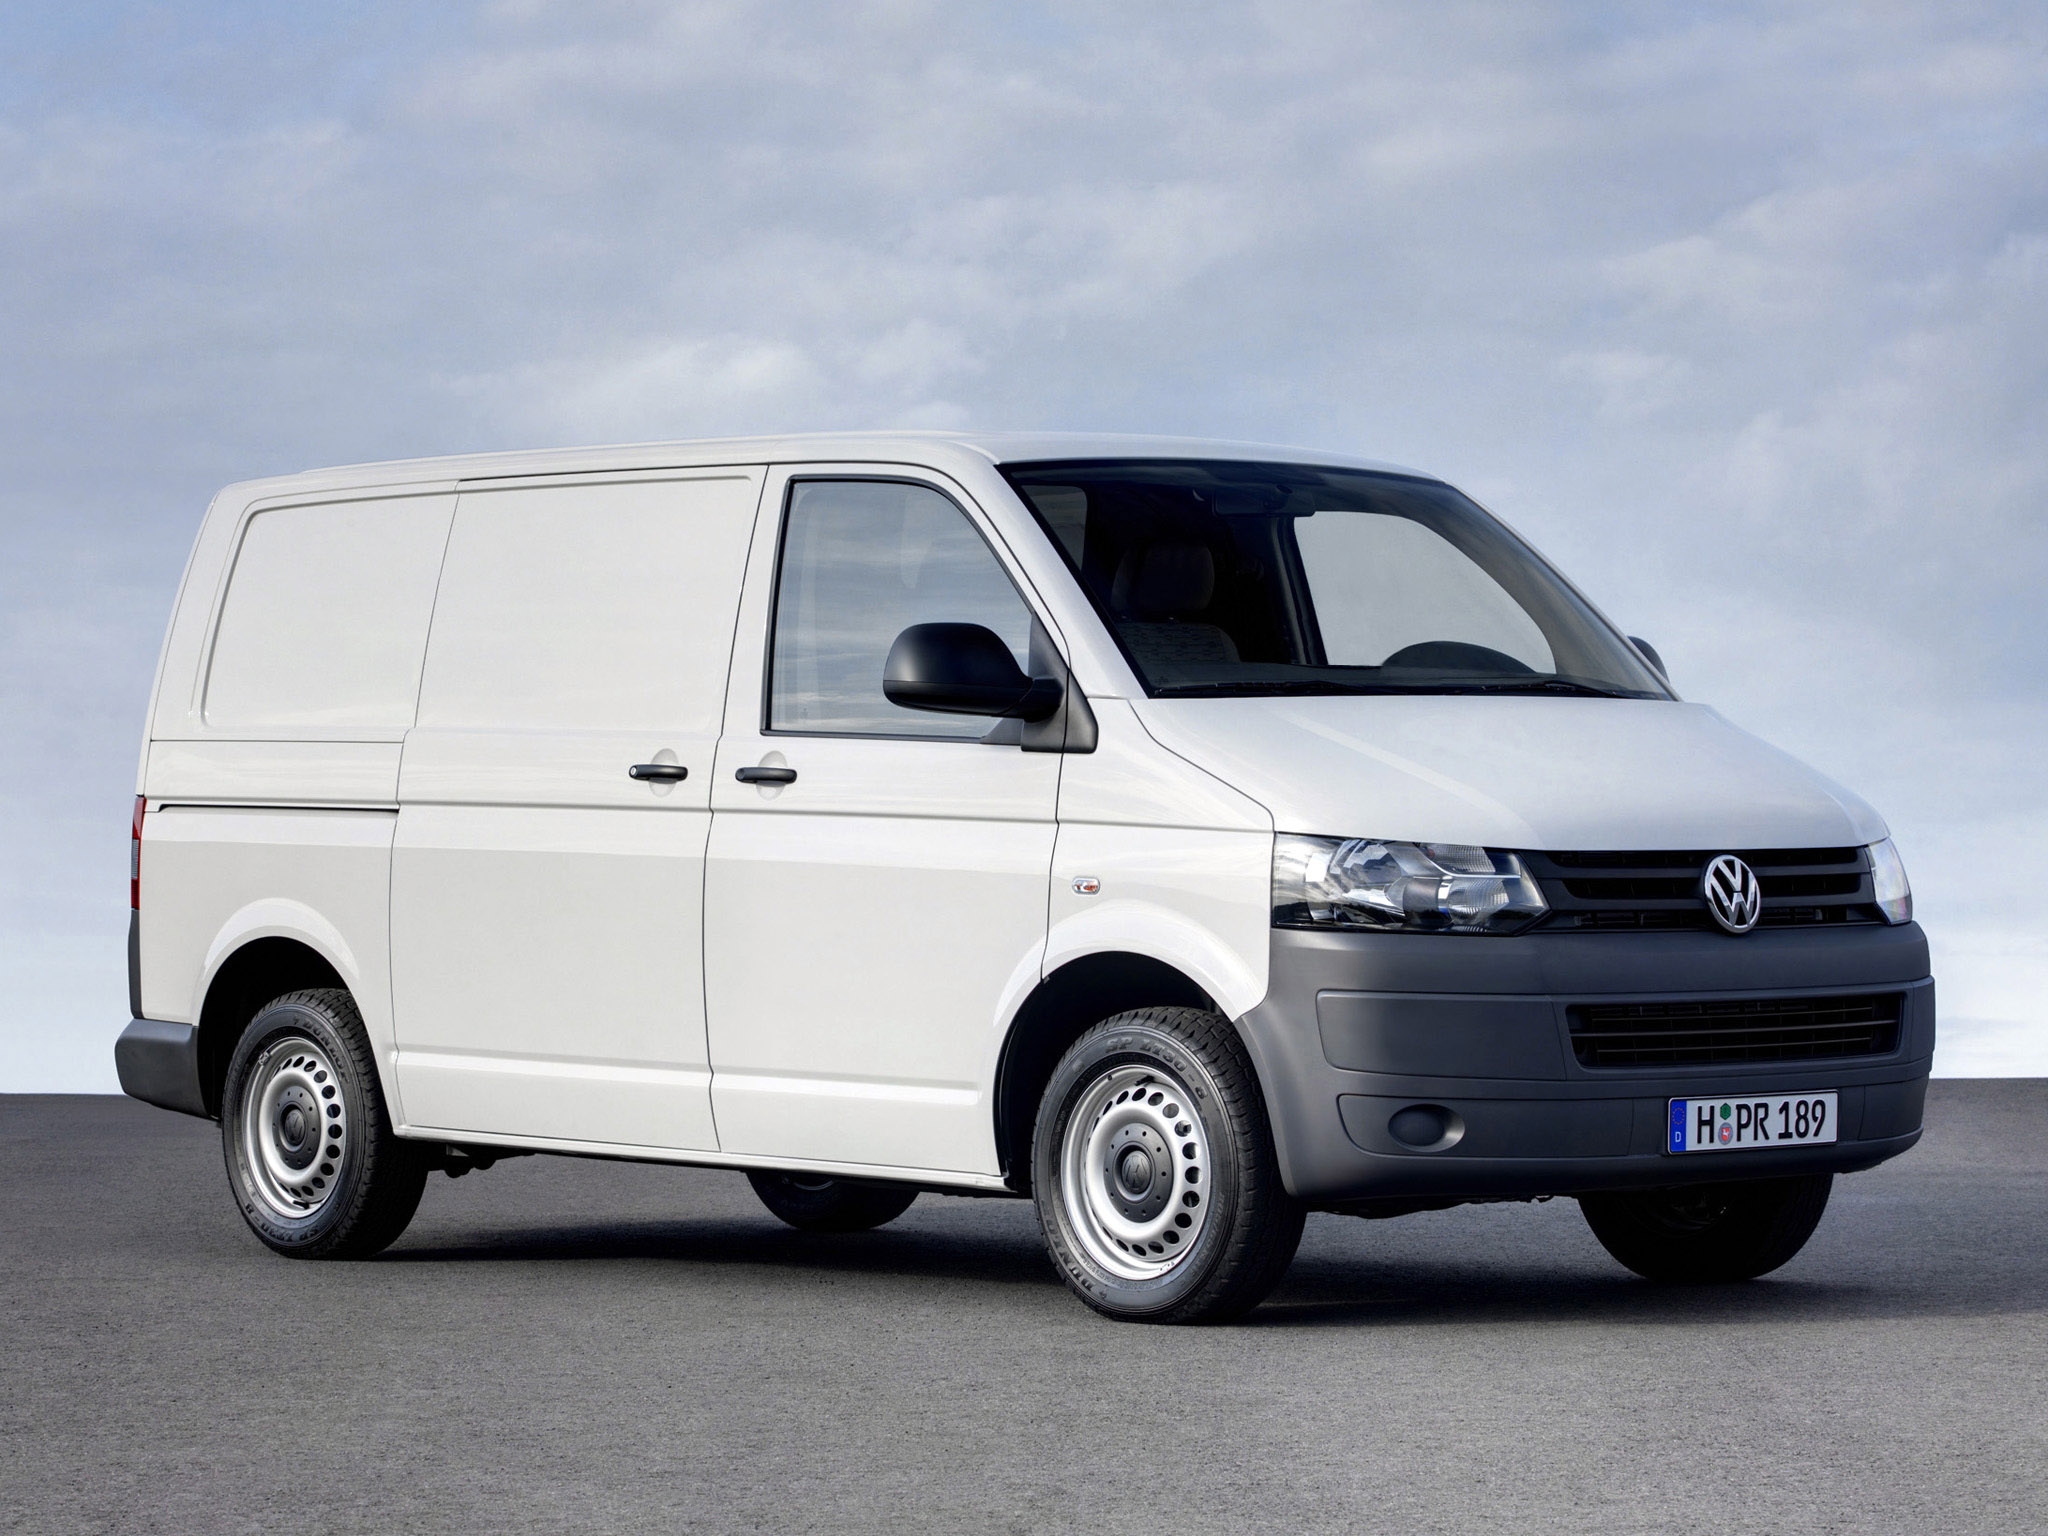 The Vw T5 Transporter It Has A Twin Turbo Tdi Engine And Is Fwd 2009 Volkswagen Beetle Fuse Box Cover Flys Away